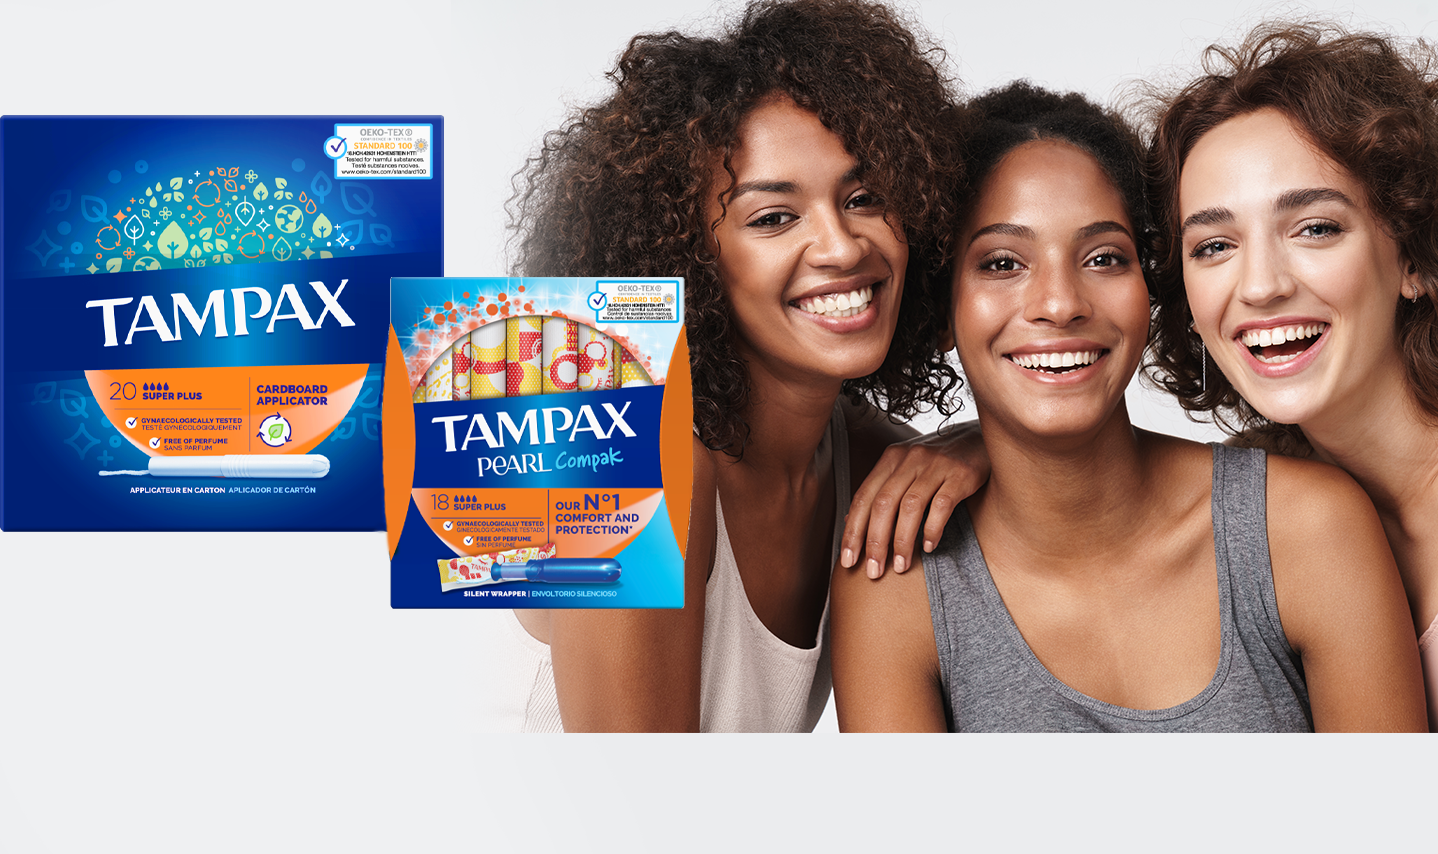 15% OFF TAMPAX